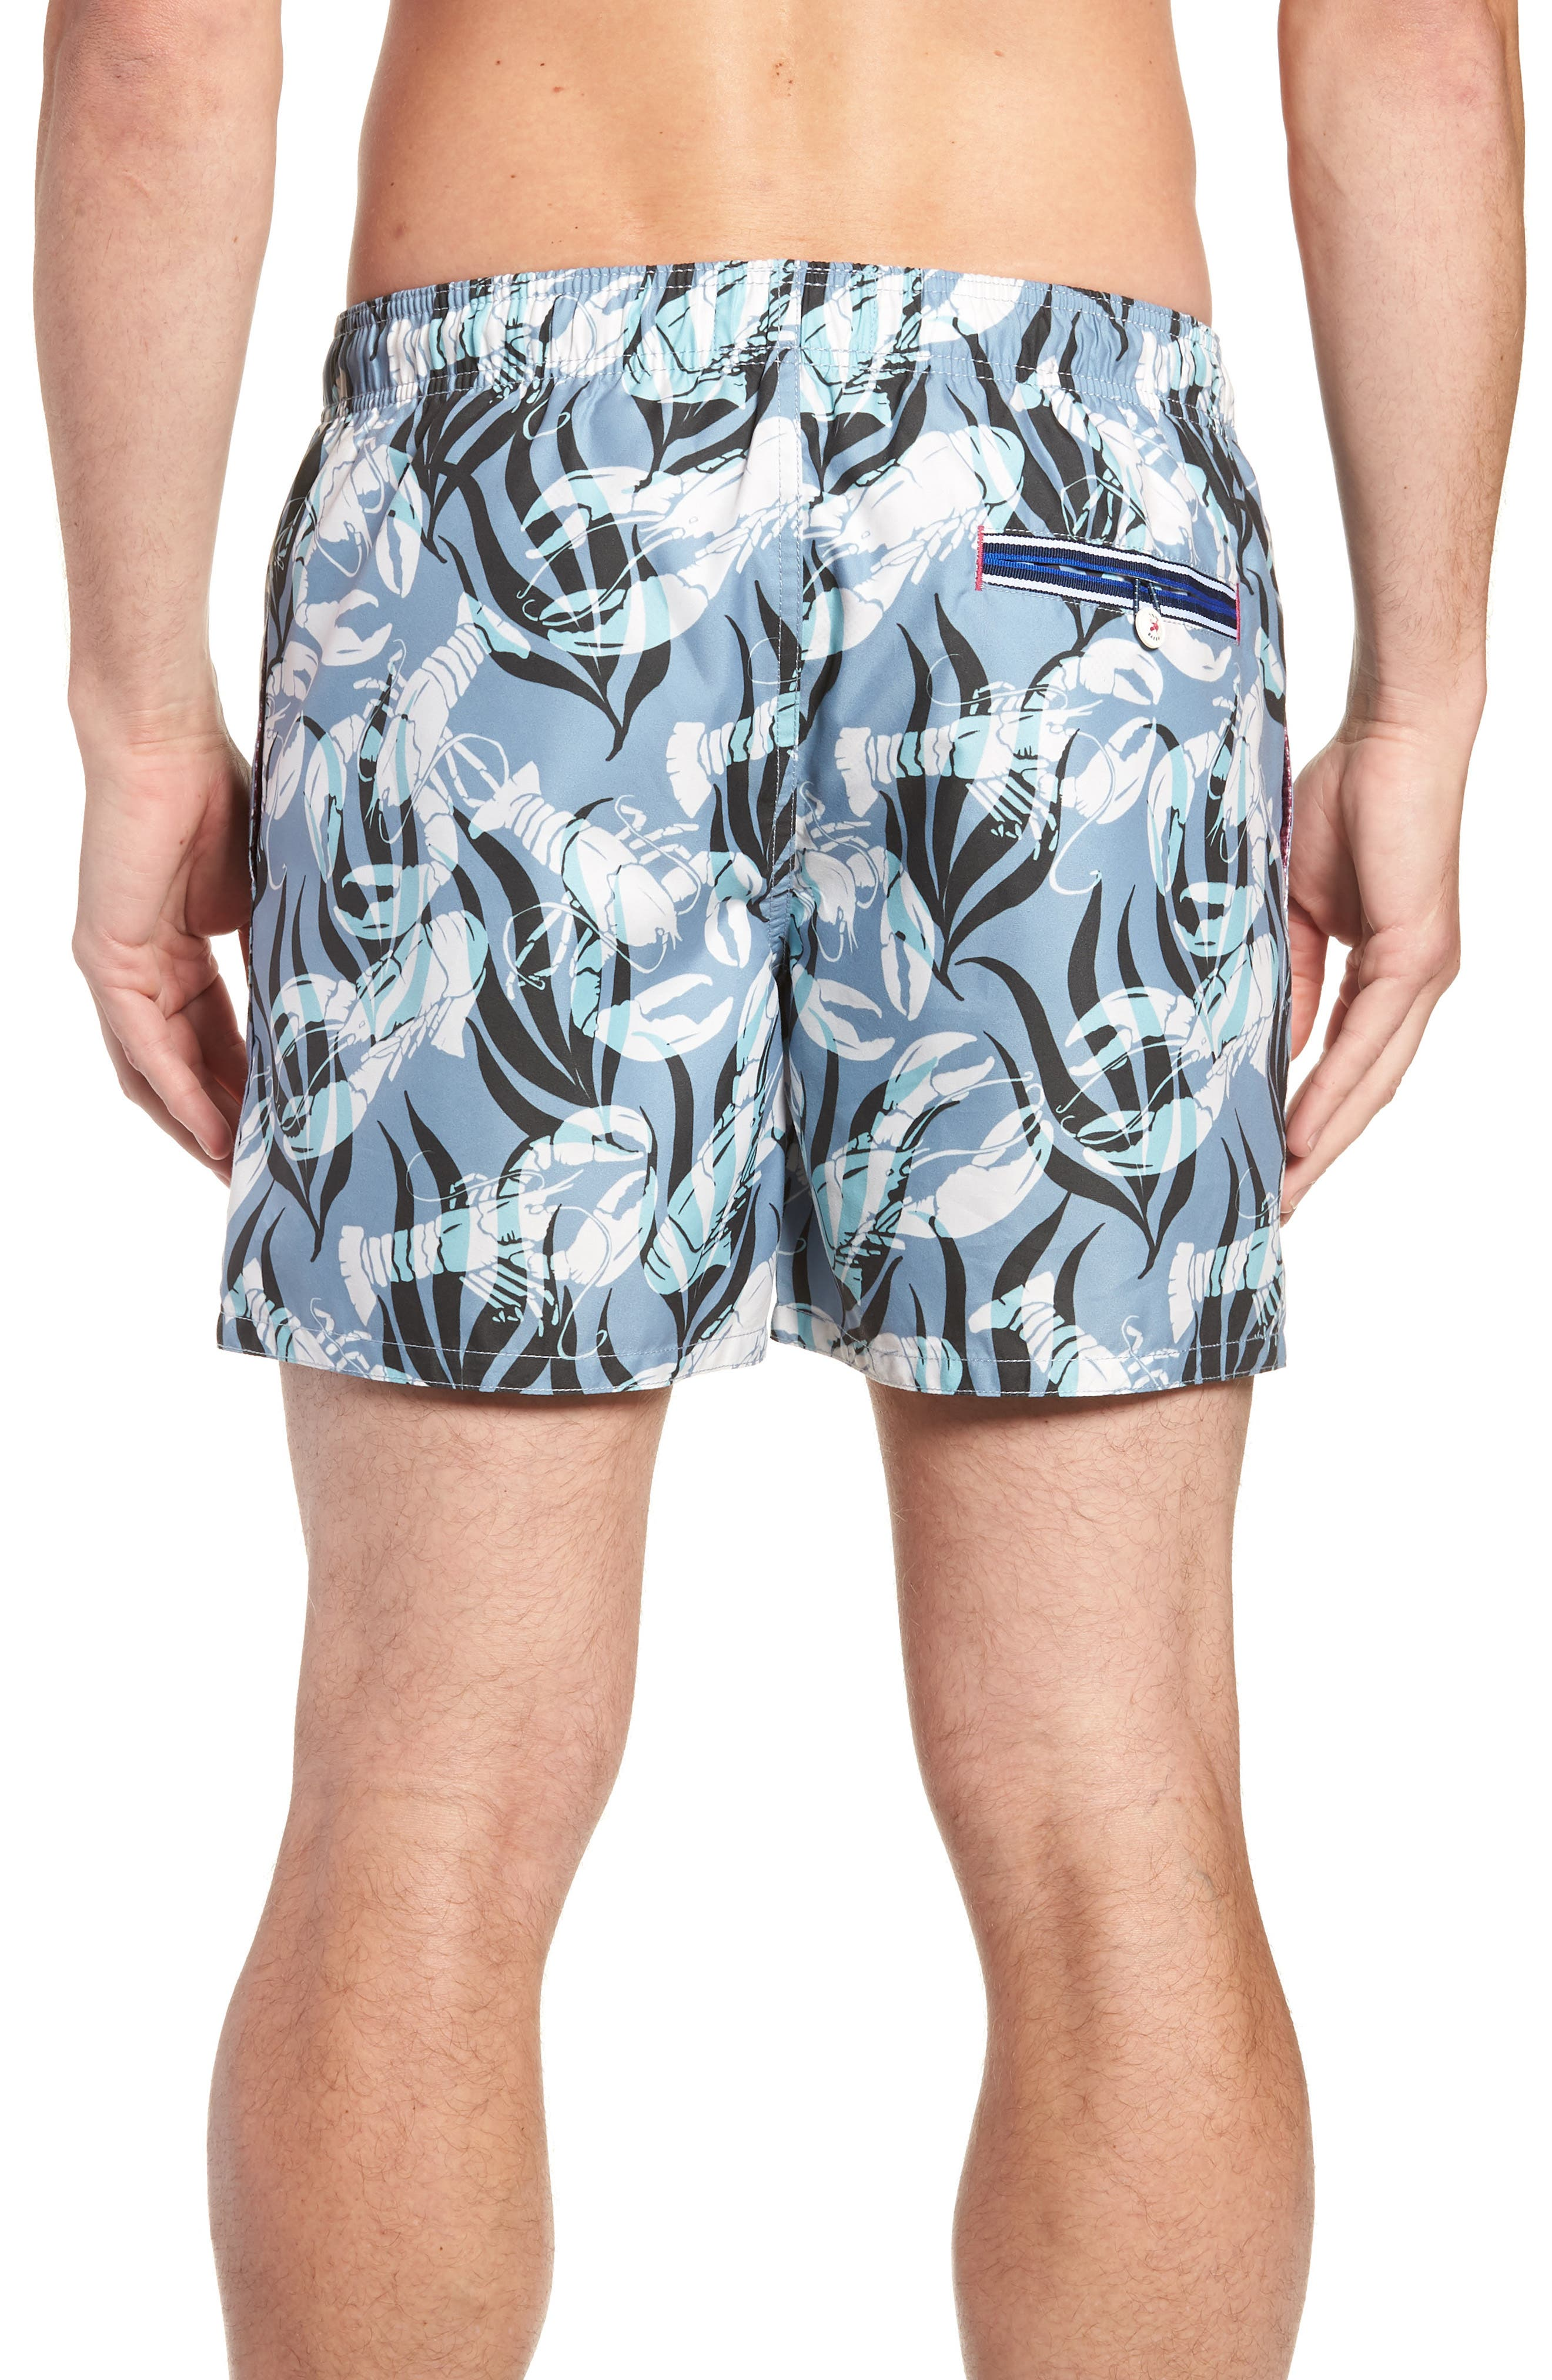 Yalow Slim Fit Lobster Swim Trunks,                             Alternate thumbnail 2, color,                             BLUE